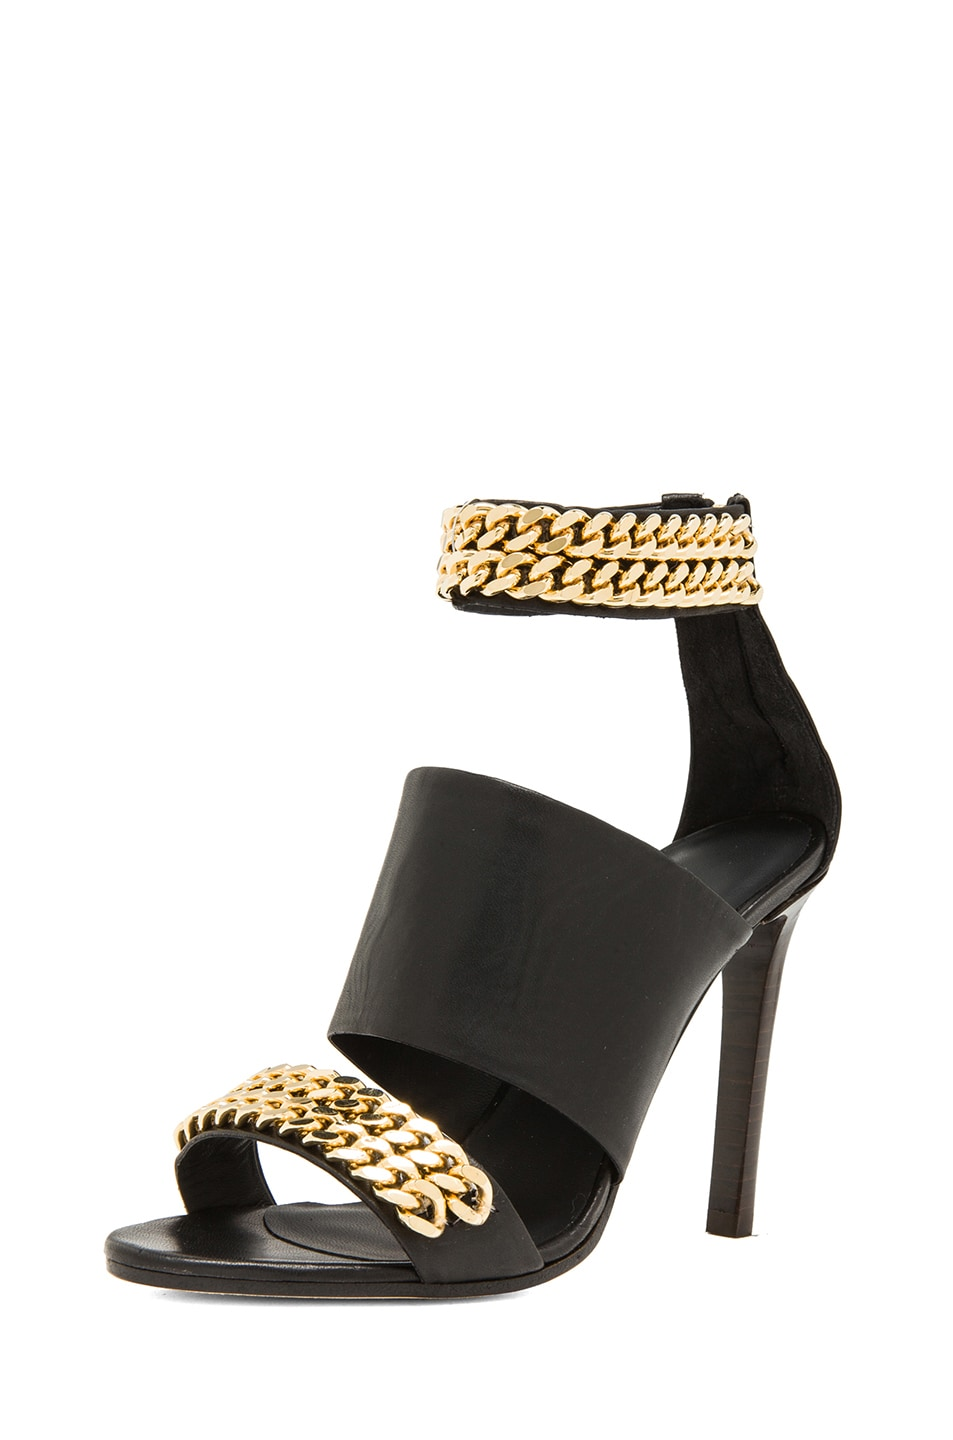 Image 2 of Jenni Kayne Chain High Sandals in Black